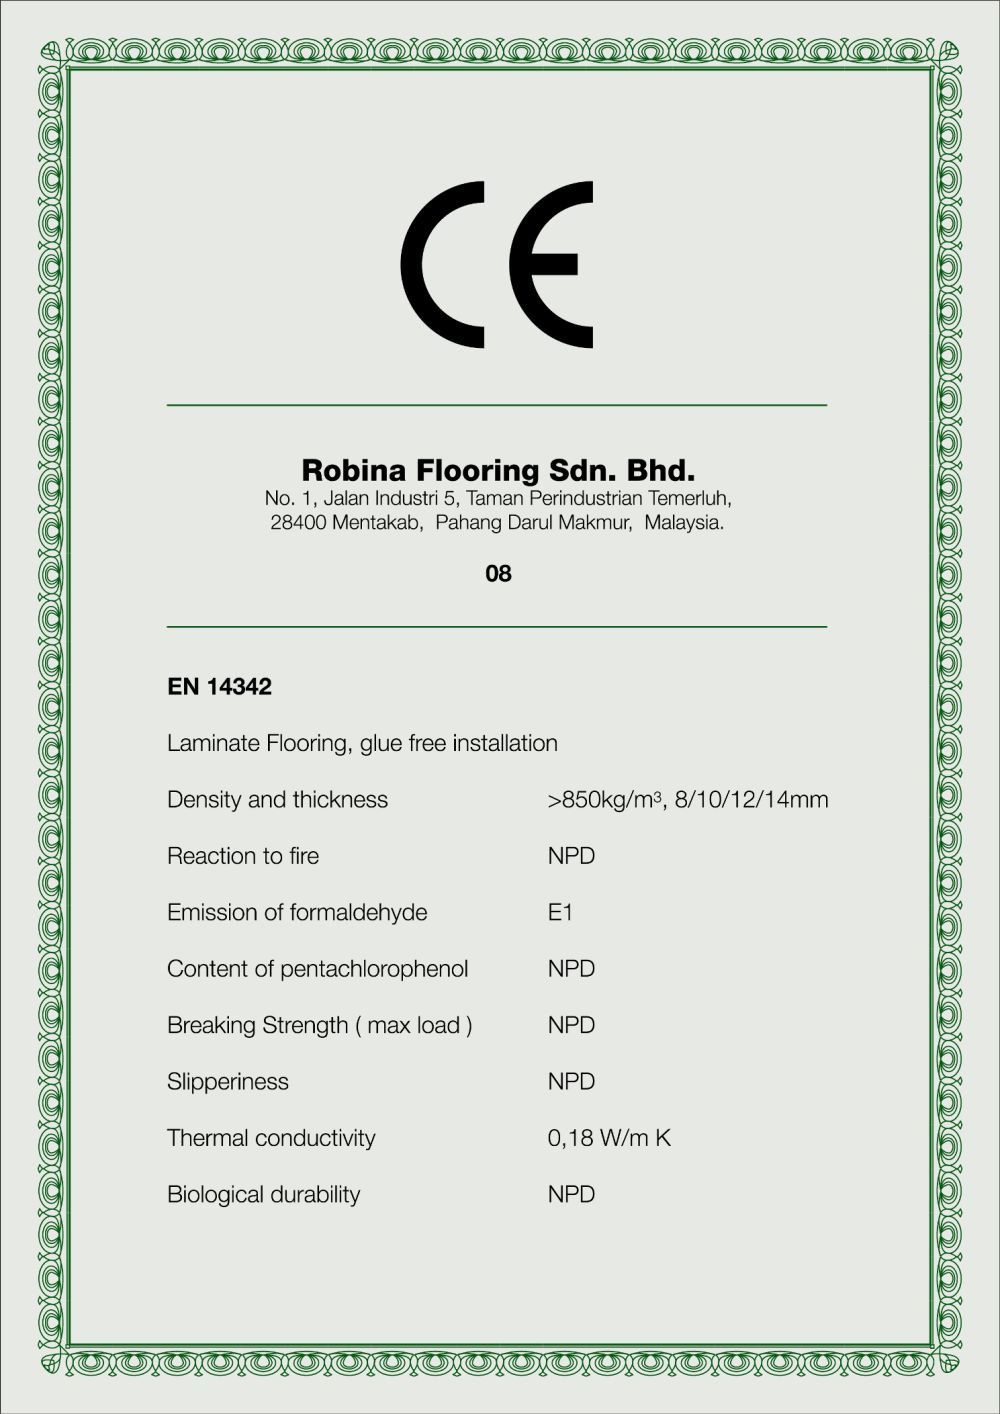 Tested to Comply with CE Marking